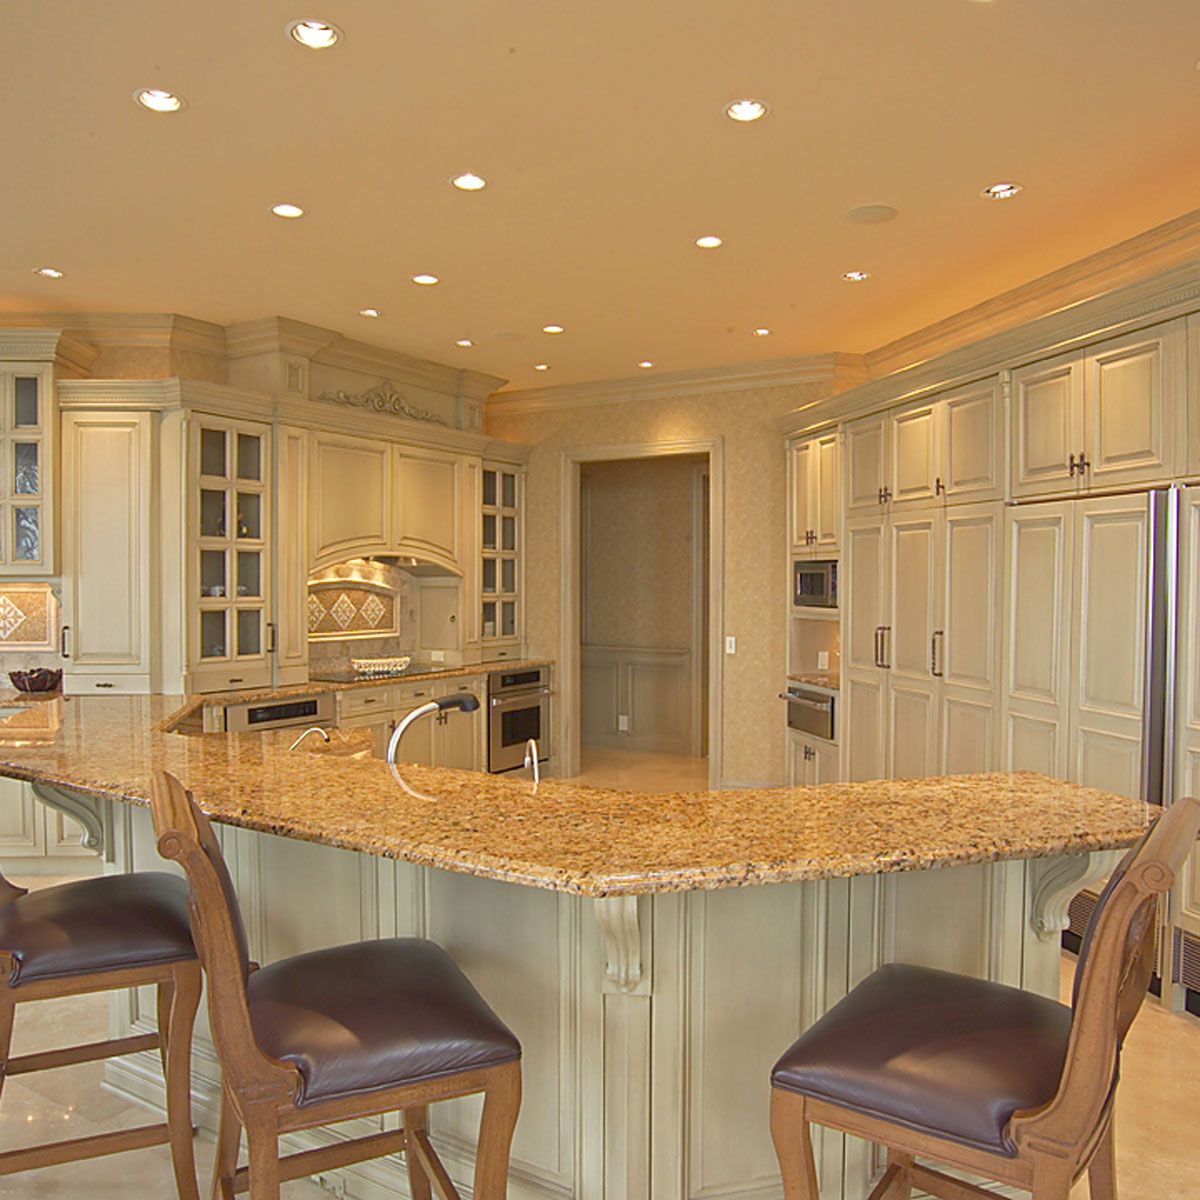 Gallery (With images) | Refacing kitchen cabinets cost ...